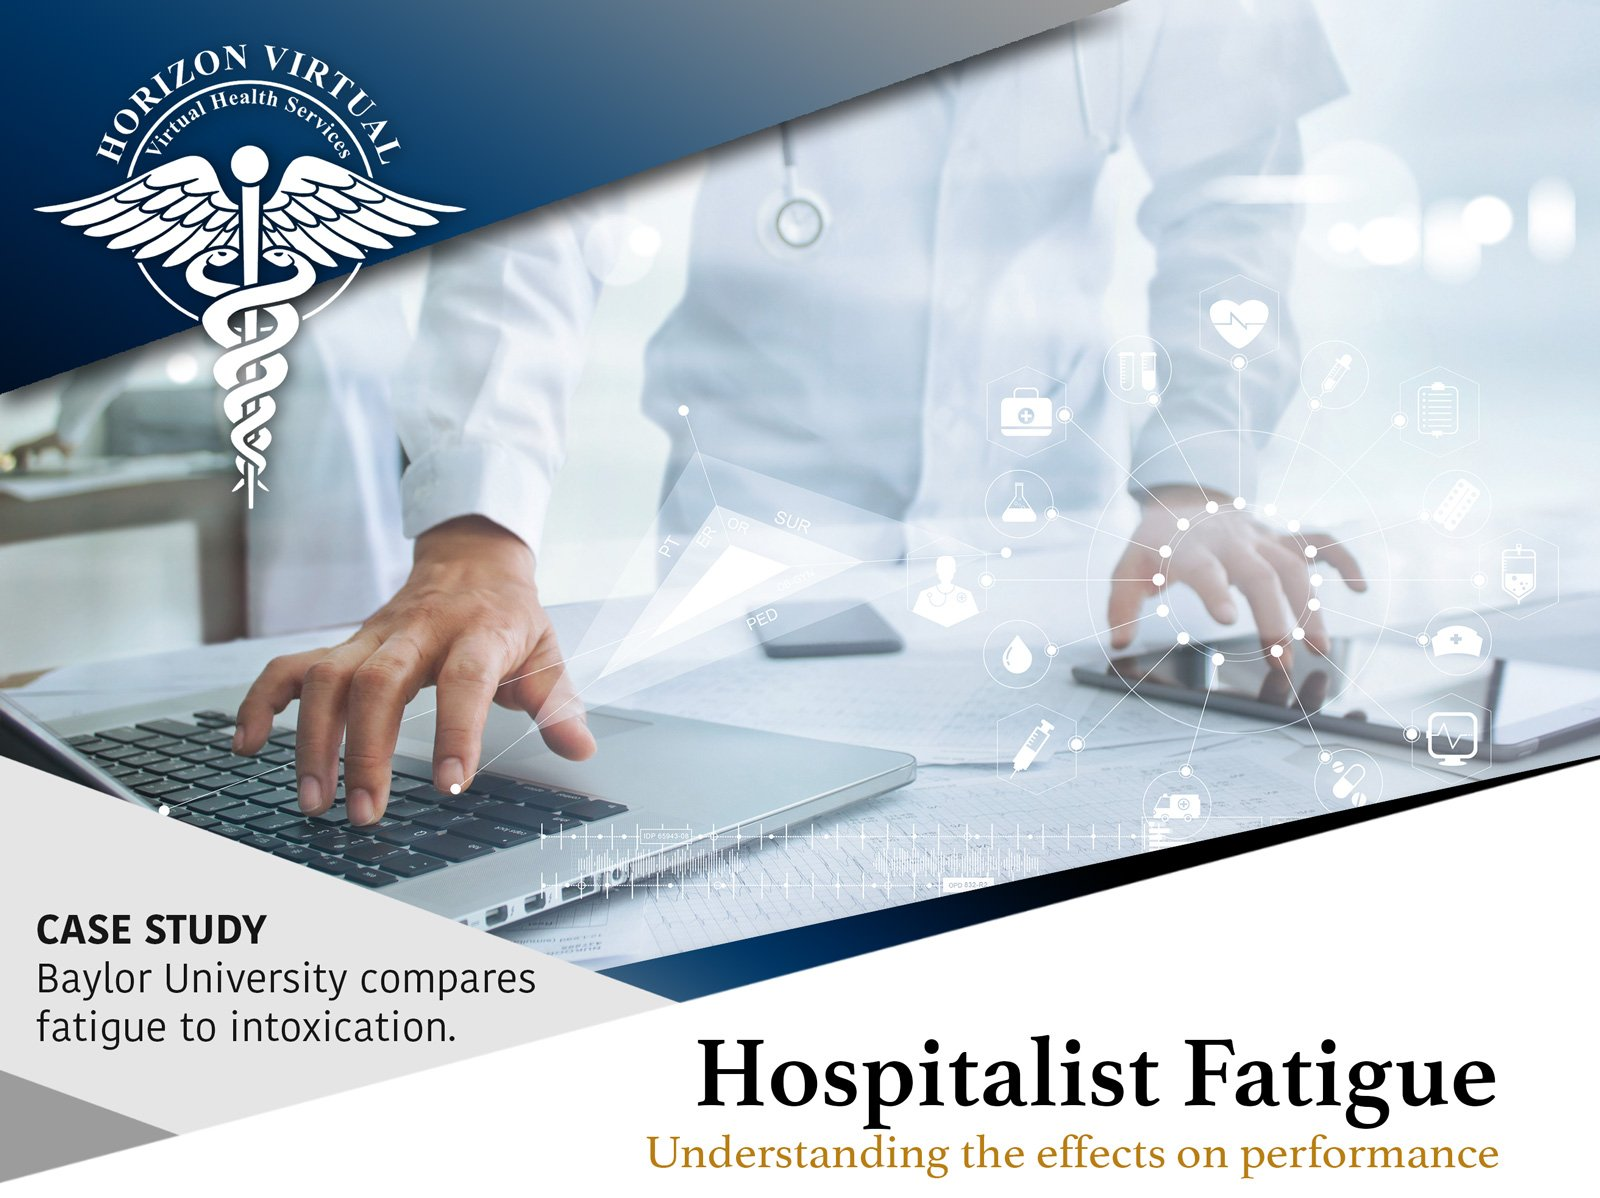 Hospitalist Fatigue Case Study